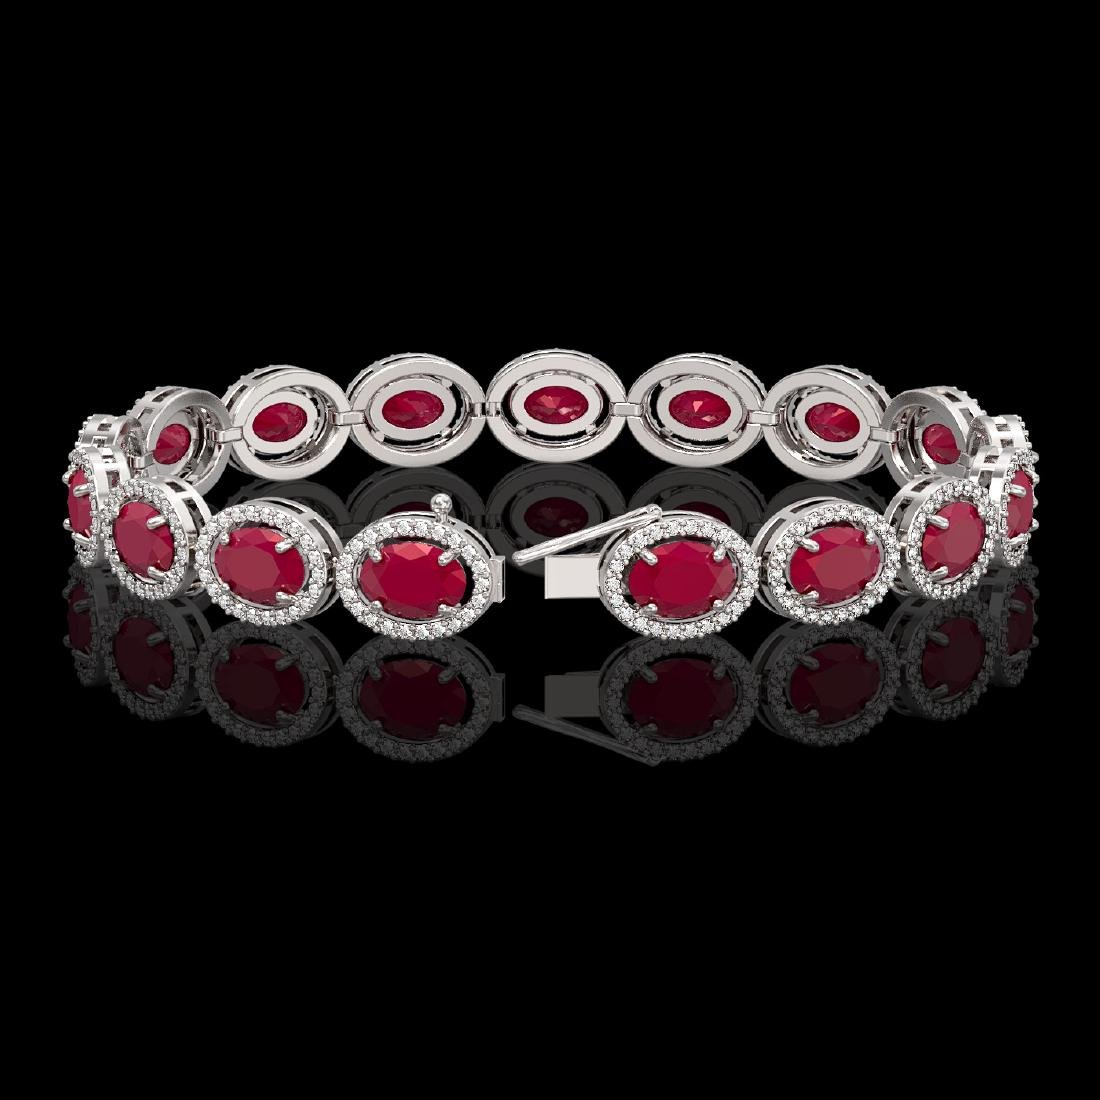 22.89 CTW Ruby & Diamond Halo Bracelet 10K White Gold - 2